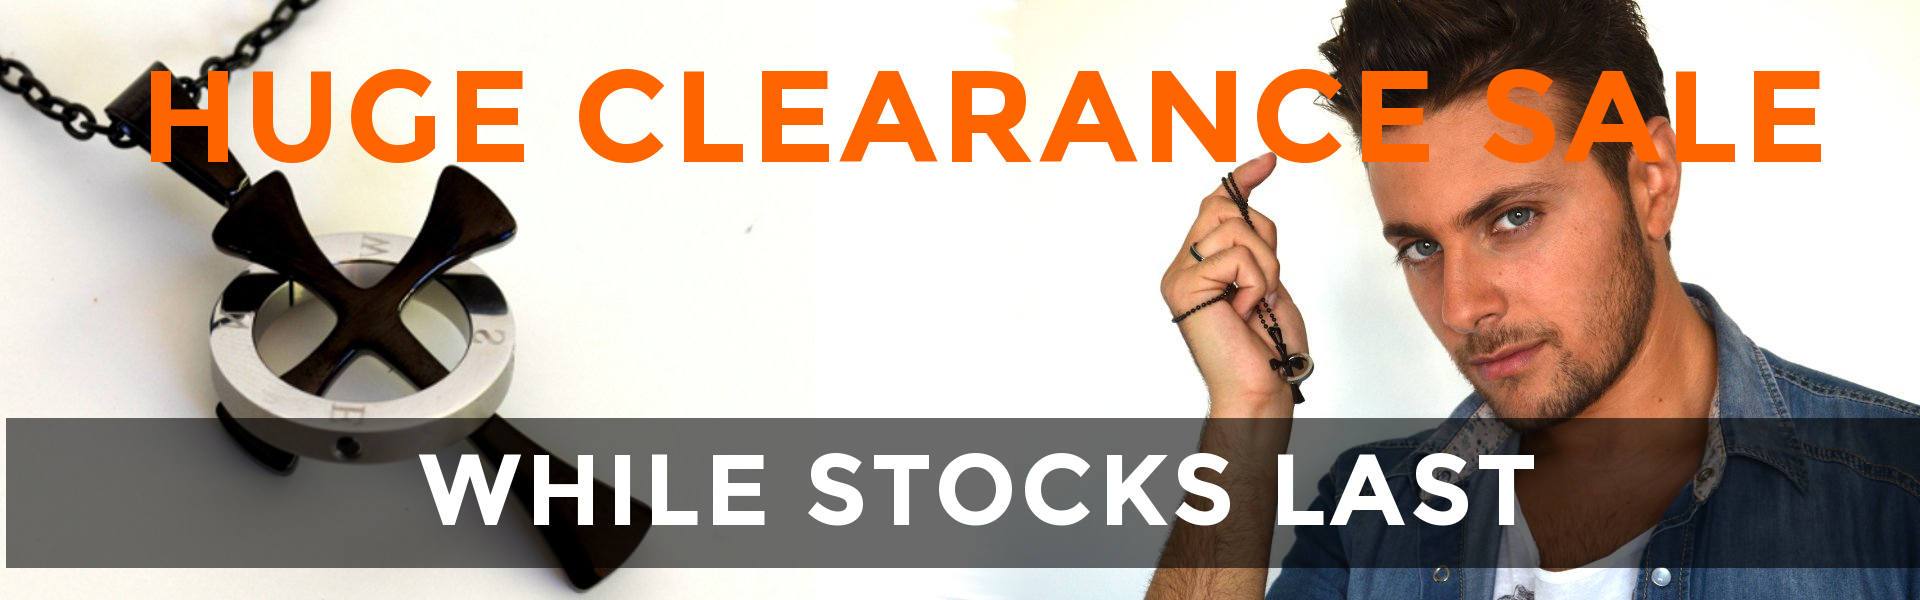 HUGE CLEARANCE SALE